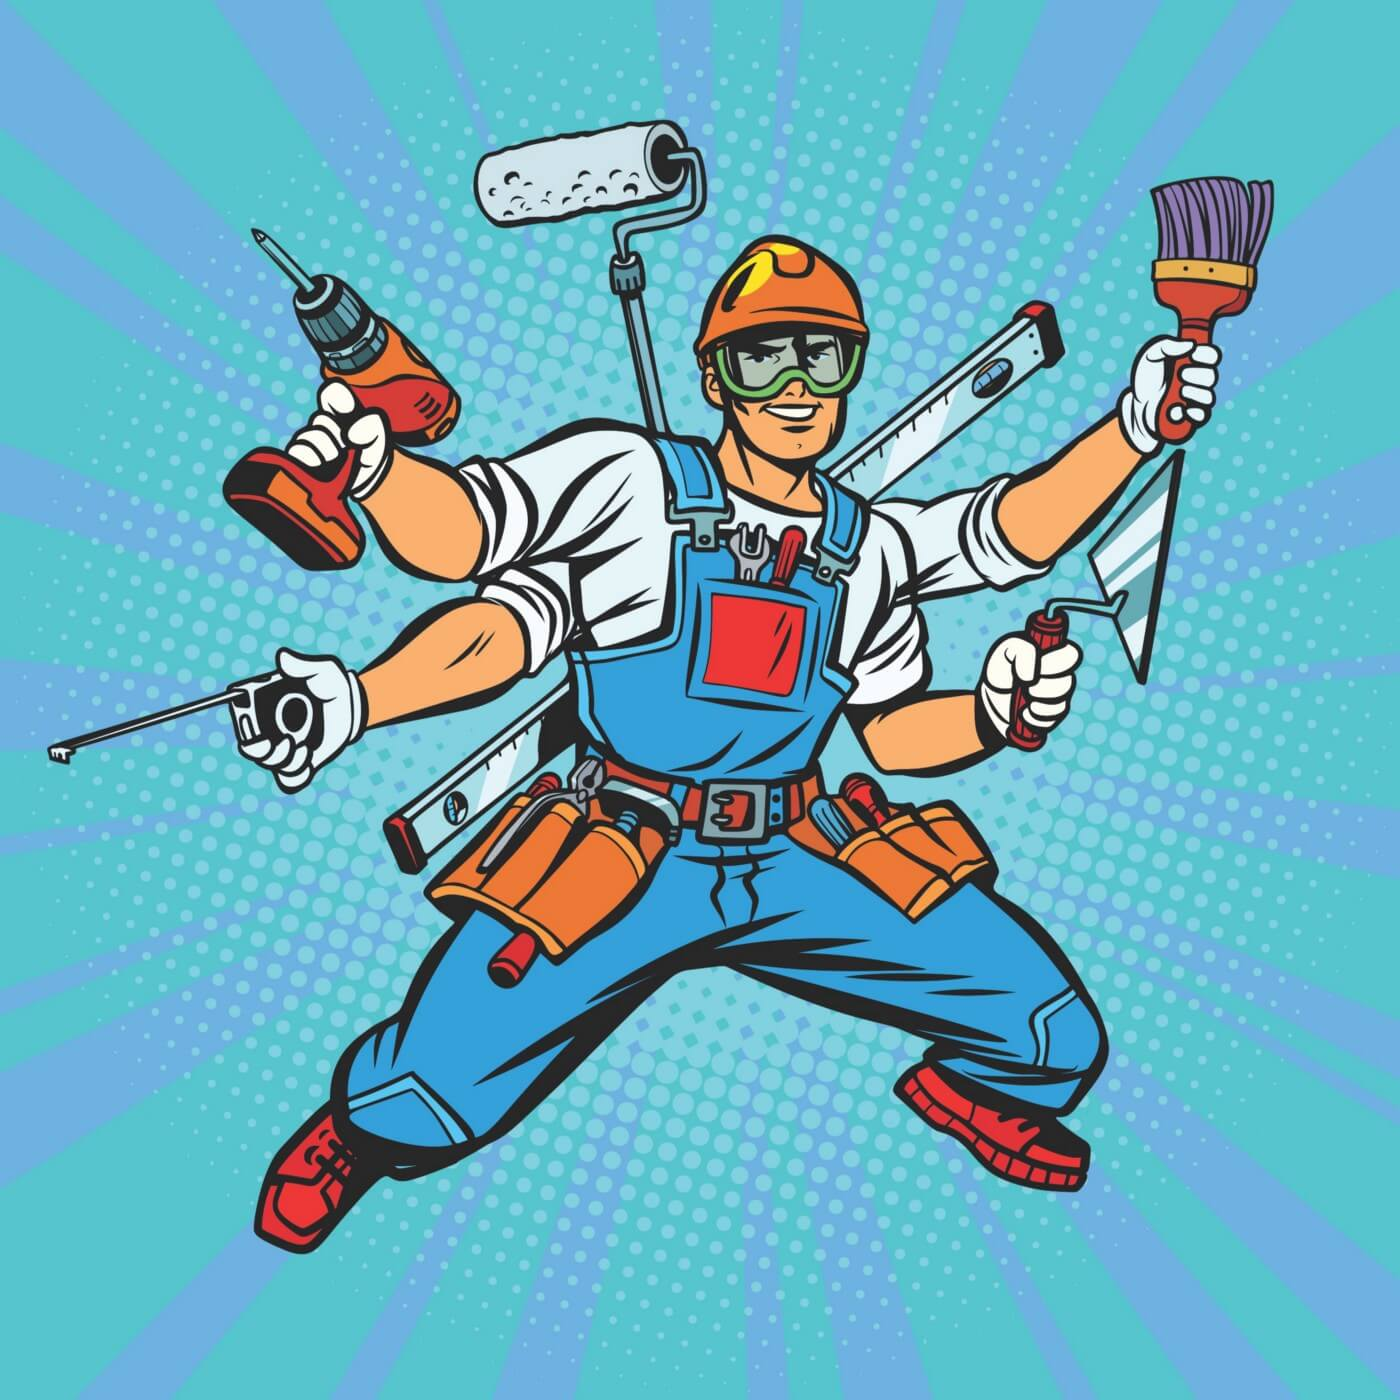 Cartoon man in overalls with four arms in a super hero pose completely laden down with construction tools (screwdrivers, pliers, level, tape measure, trowel, paint brush, paint roller, drill)